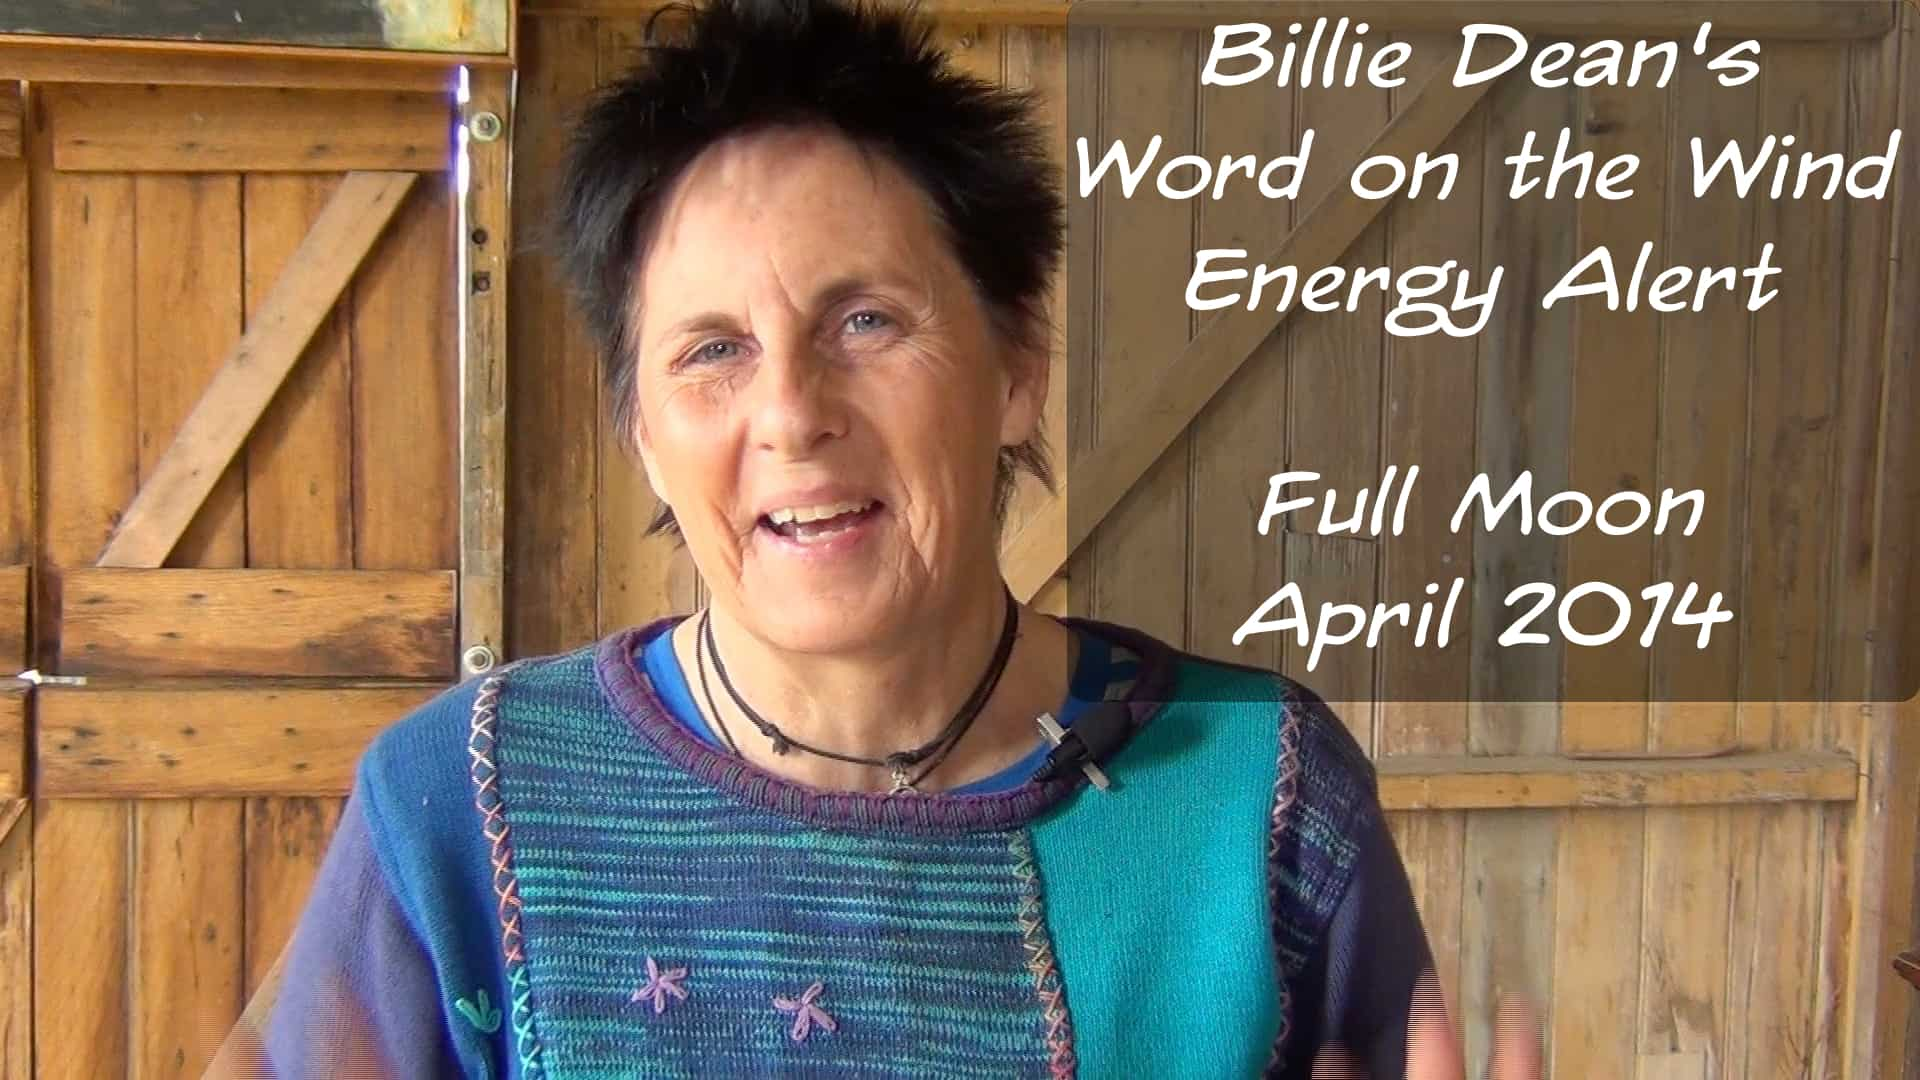 Full Moon in April – Word on the Wind Energy Alert